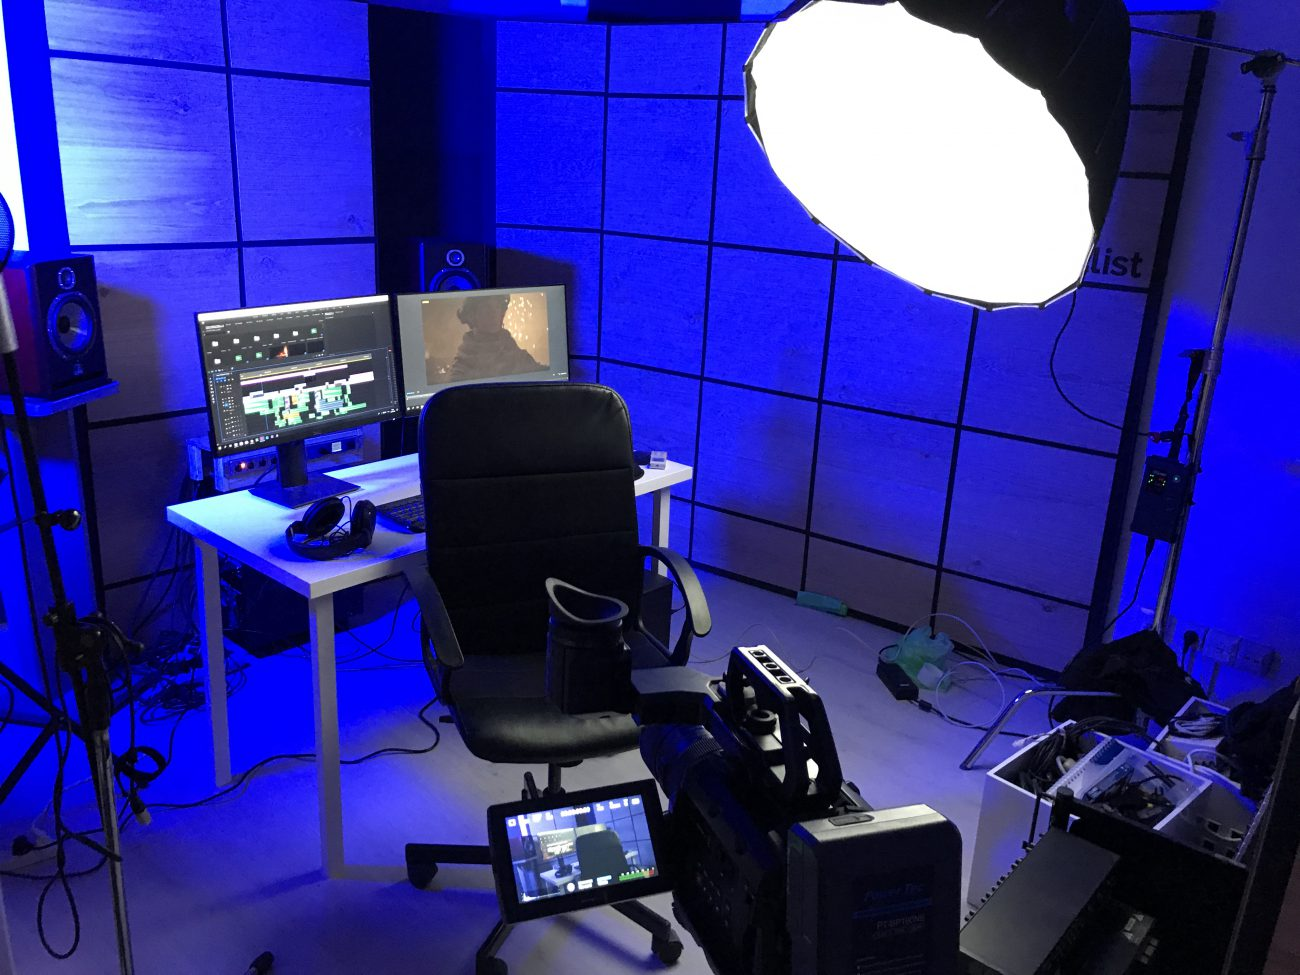 Is lighting essential YouTube equipment?